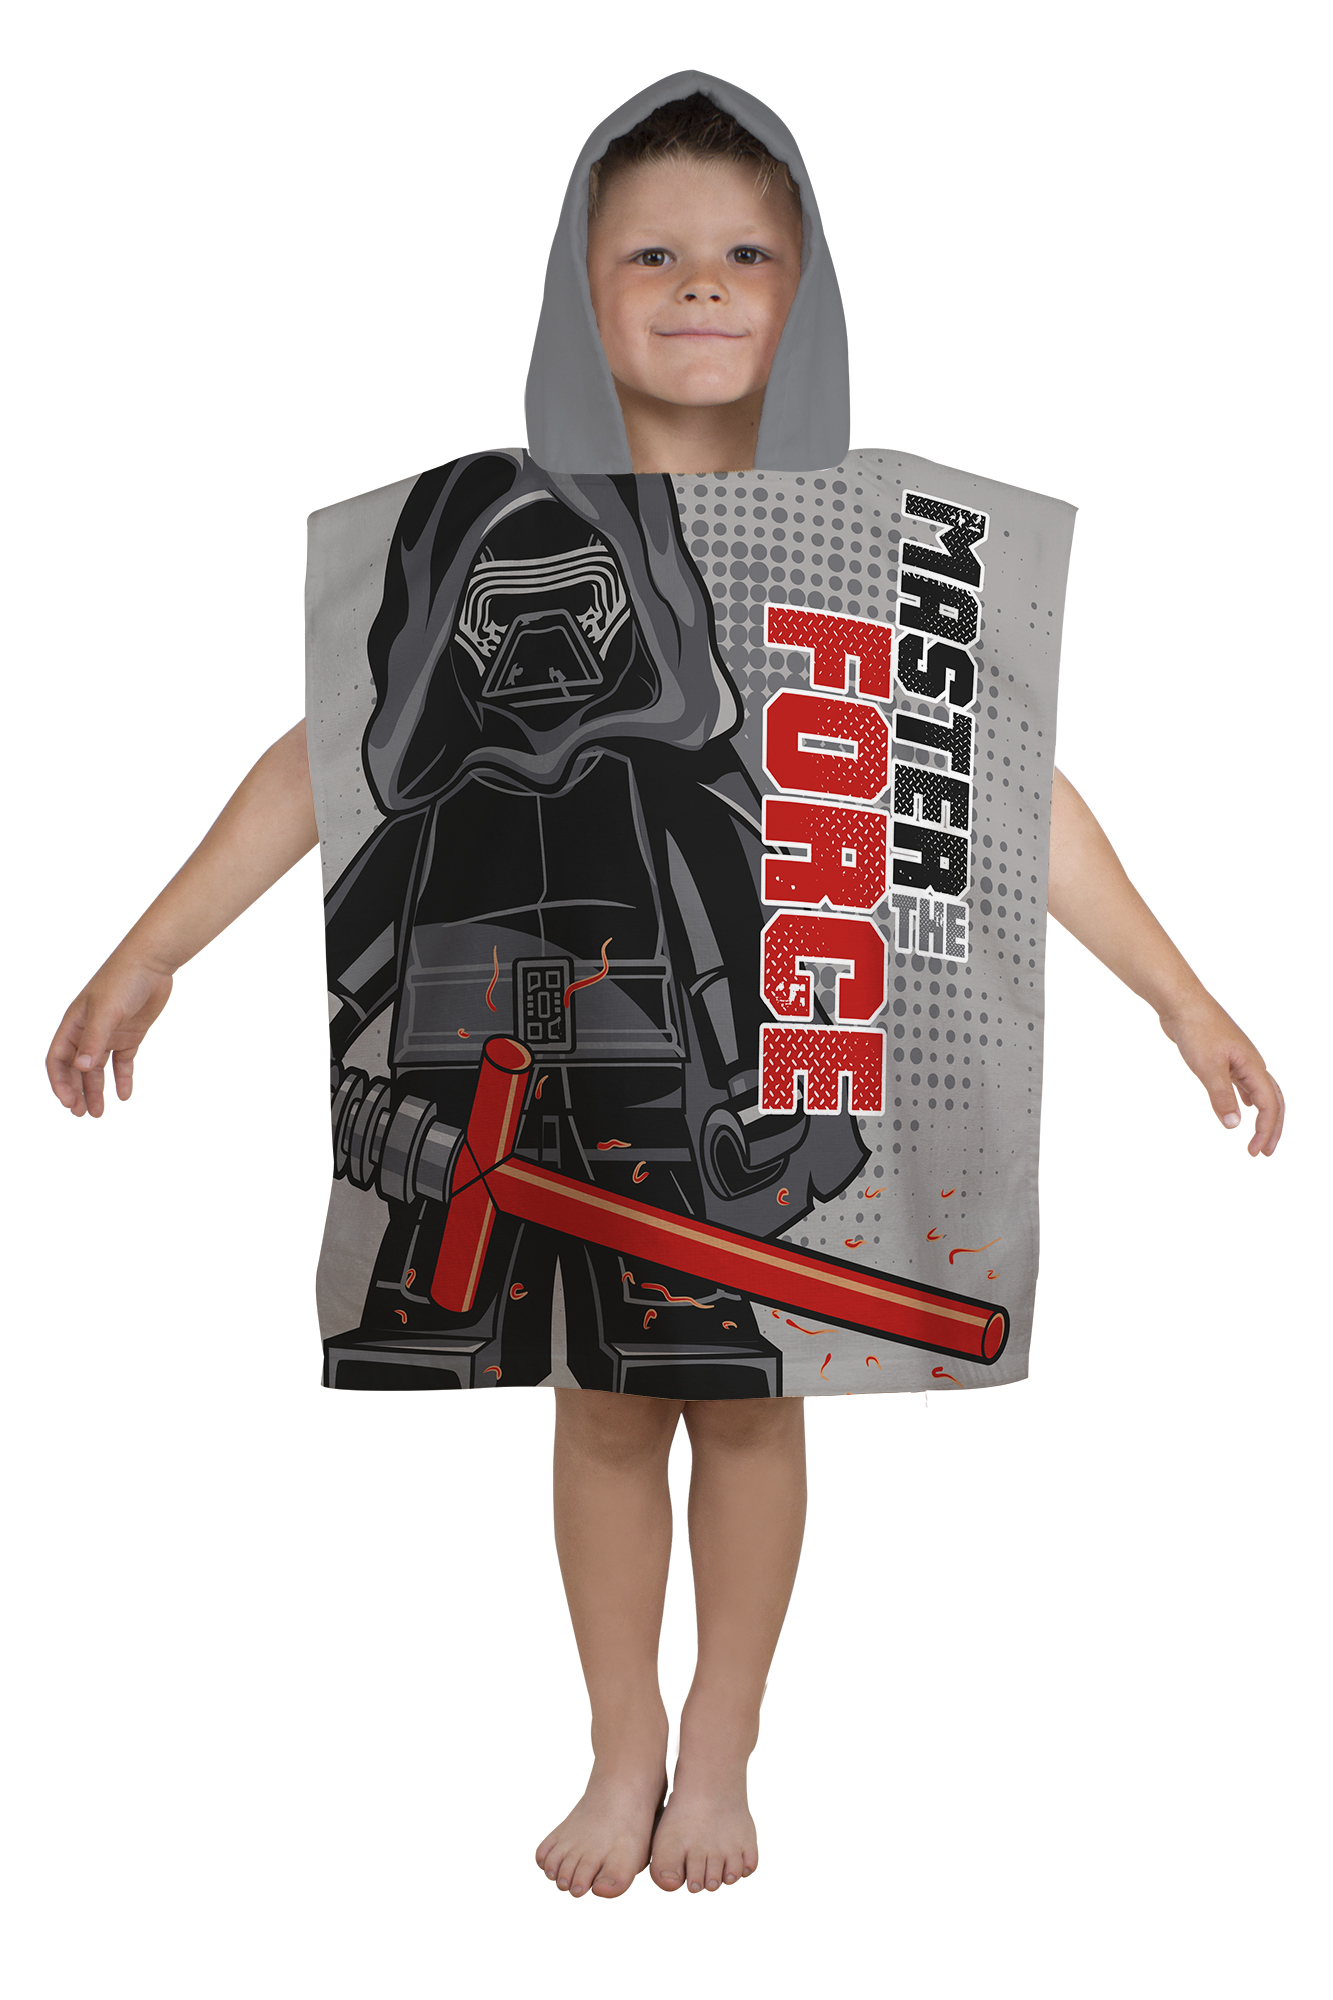 lego star wars superweich kapuzen poncho strandbad urlaub handtuch jungen ebay. Black Bedroom Furniture Sets. Home Design Ideas